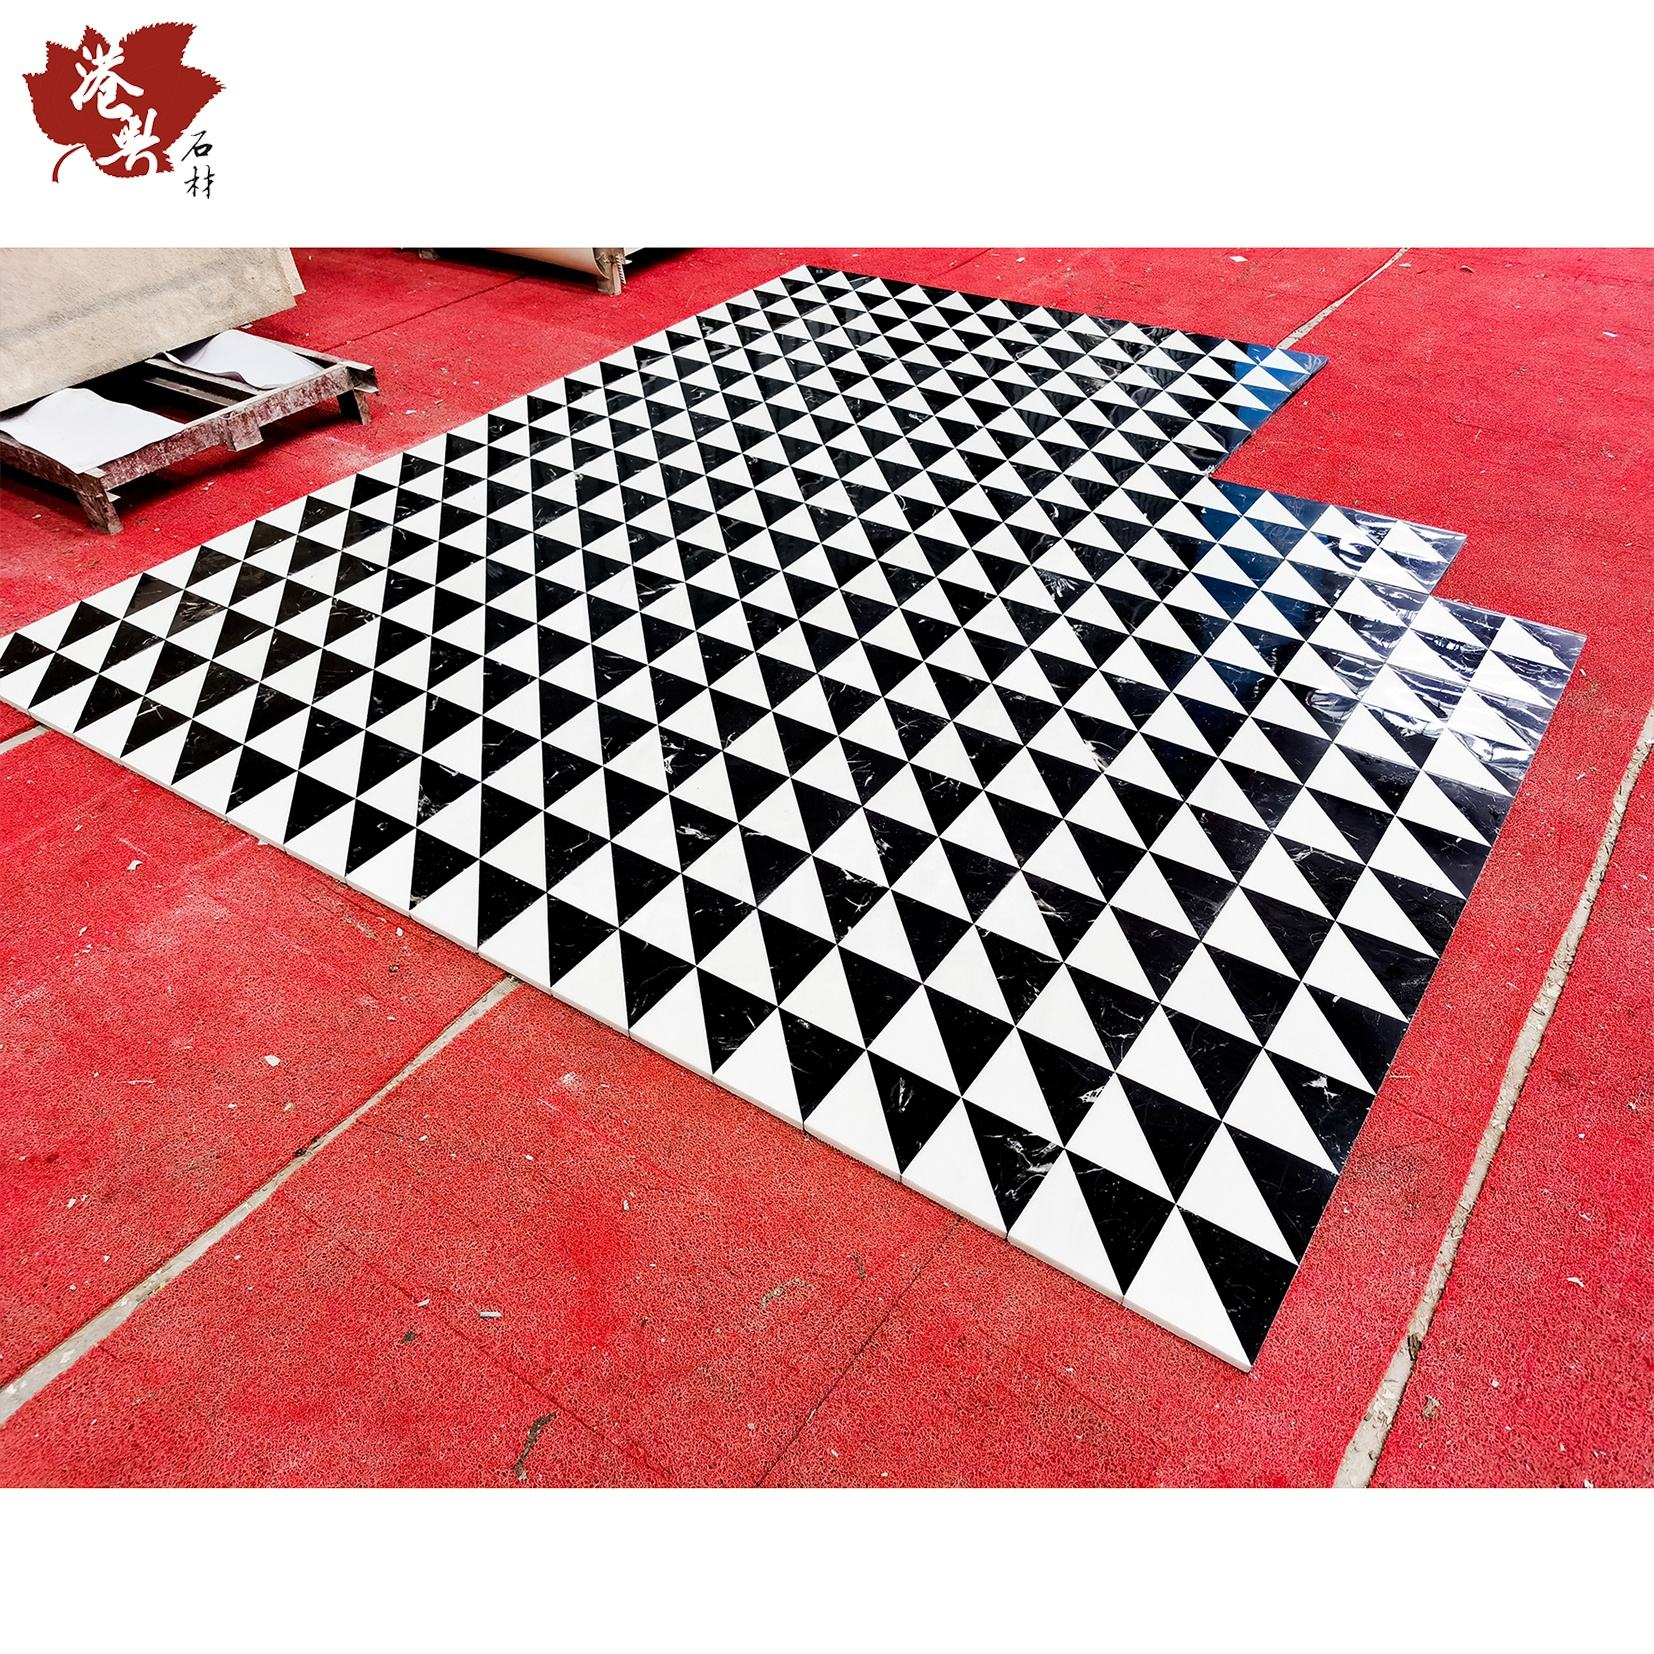 300X300 Wall Floor Art Magic Cube Tile, Marble Water Jet Ceramic Floor tile BLACK AND WHITE CHINESE MARBLE